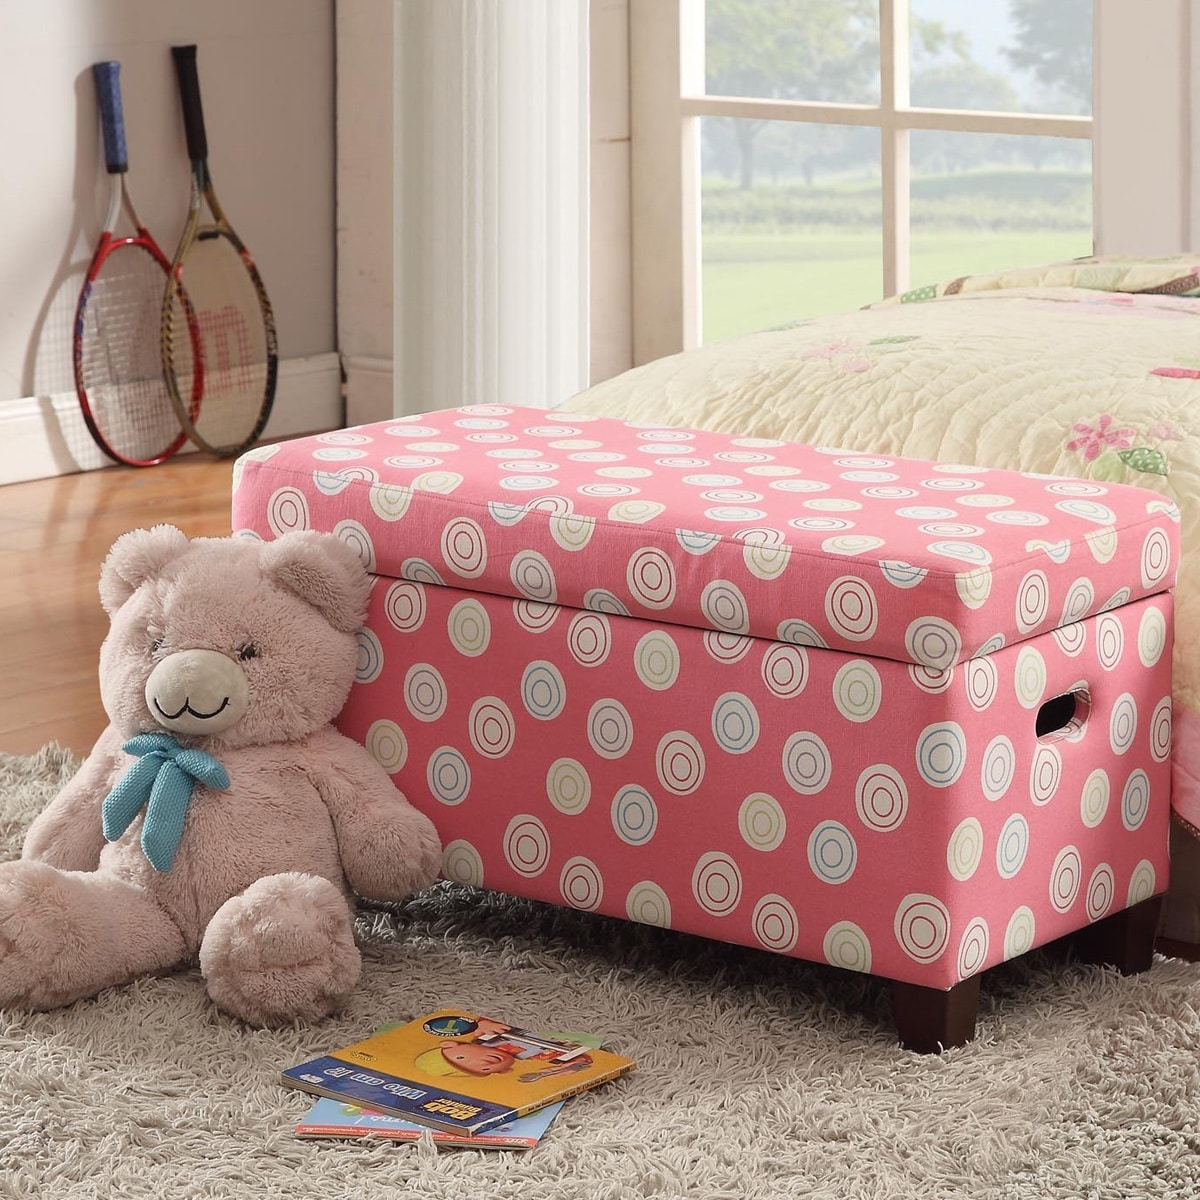 HomePop Deluxe Pink Storage Bench (pink and multi color s...